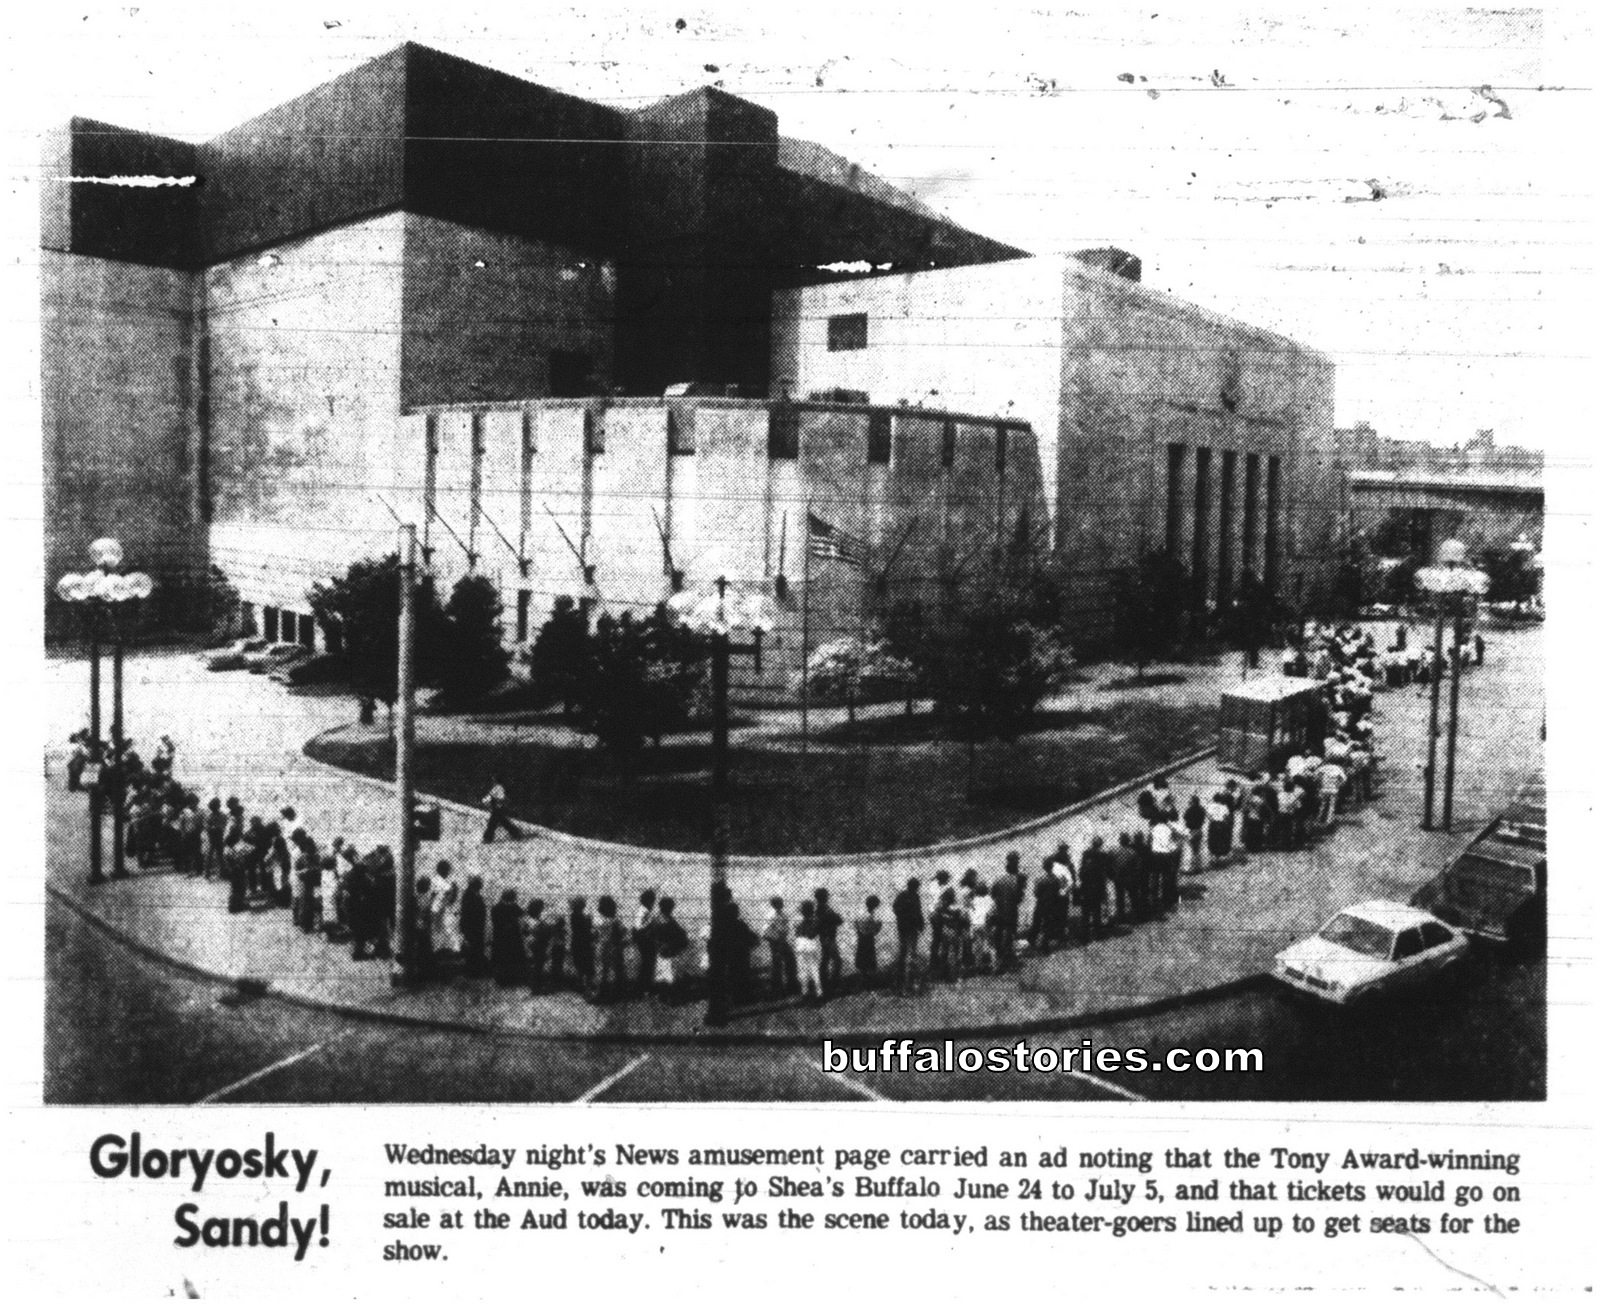 May 29, 1980: The line wraps around the Aud for 'Annie'